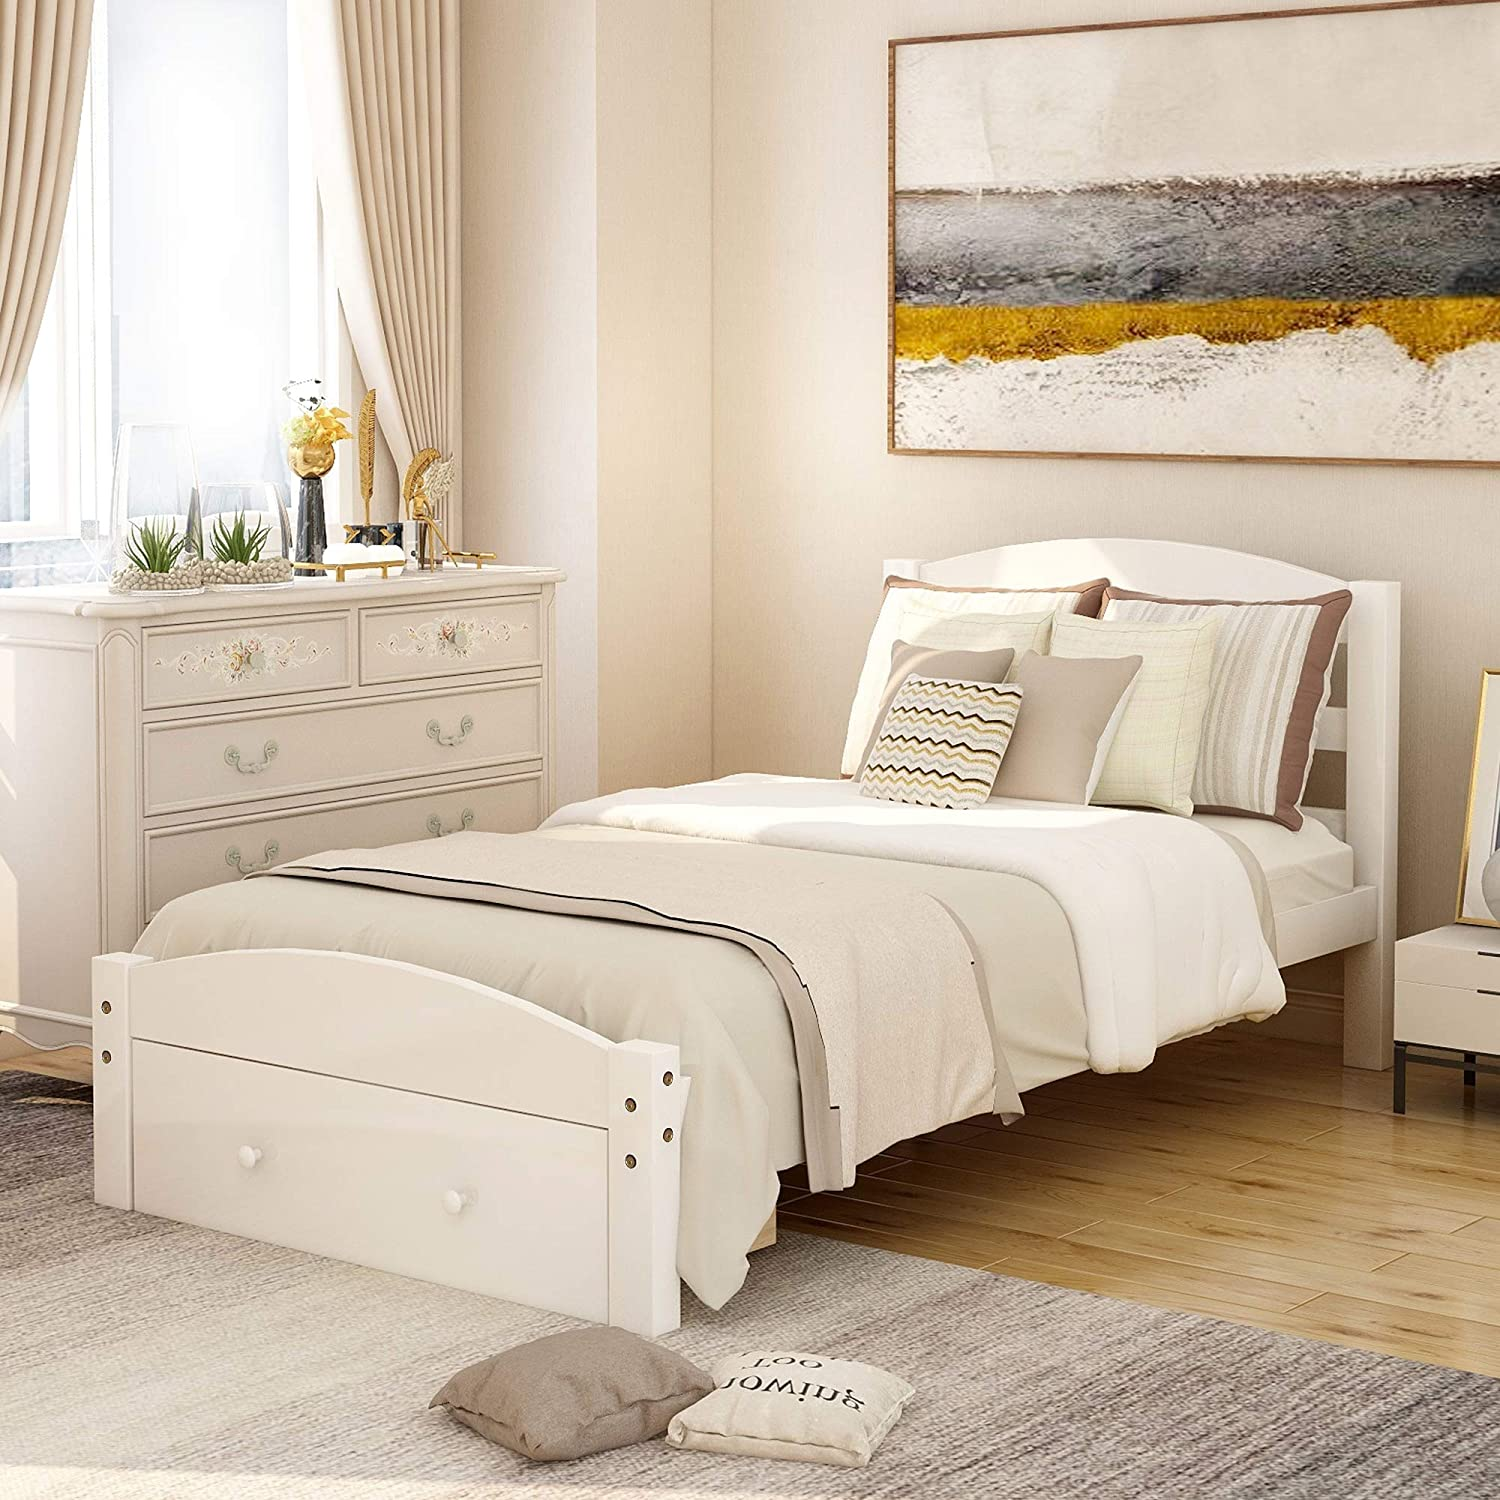 NOSGA Platform Twin Department 67% OFF of fixed price store Bed Frame Wood Drawer Storage Headboar with